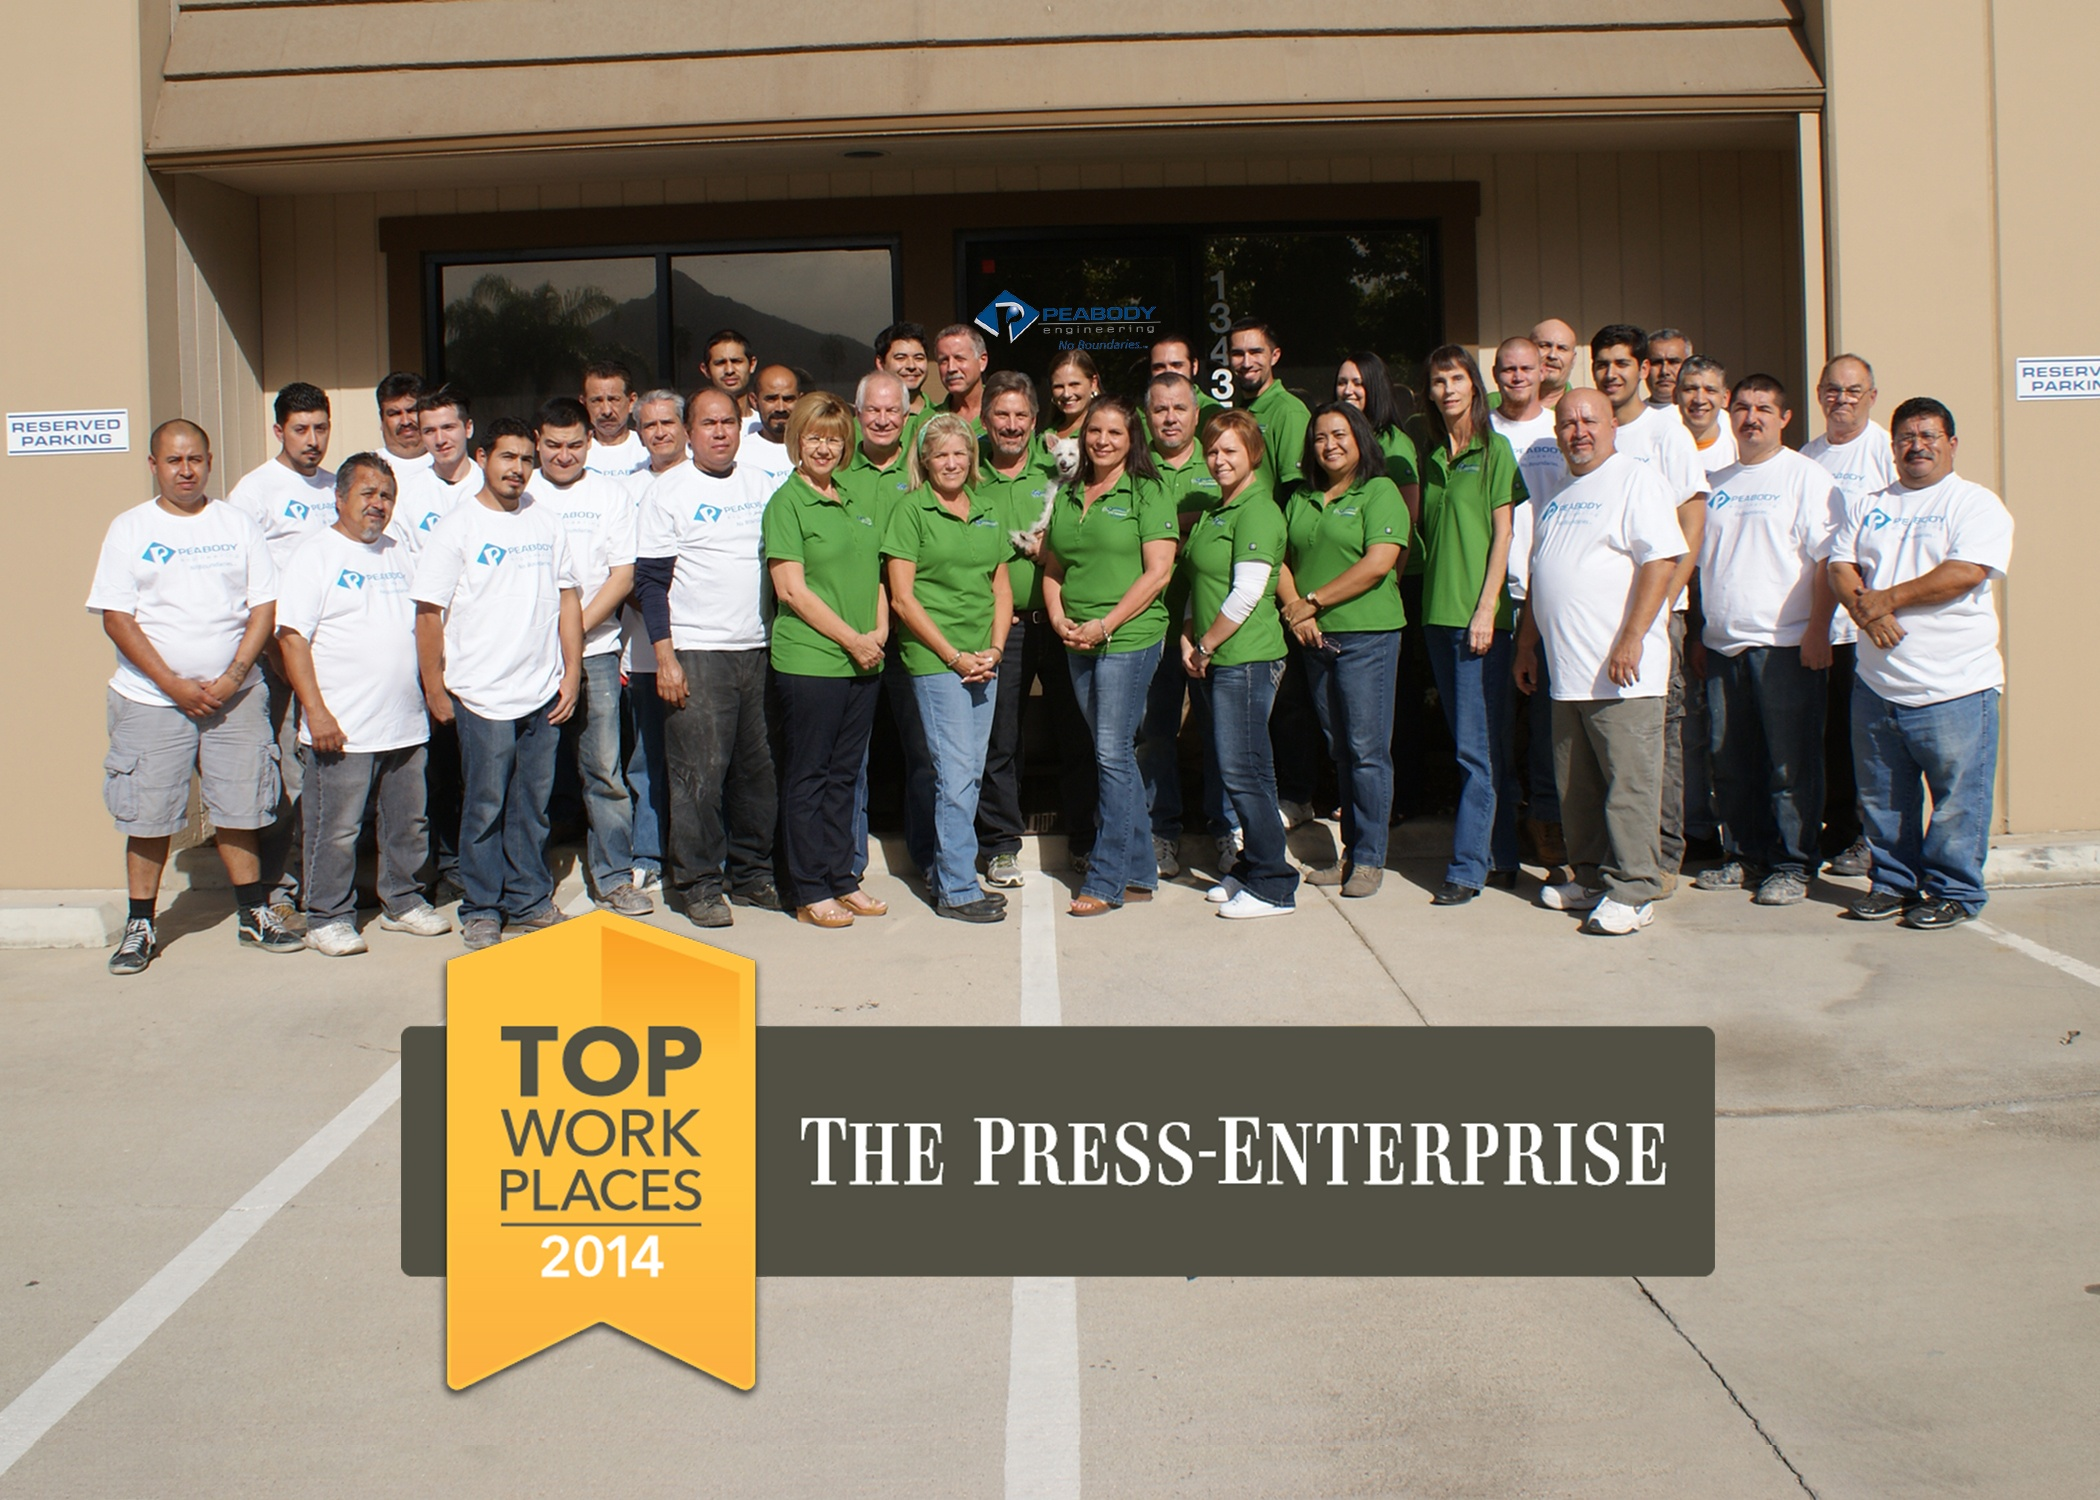 employees-001-w7xh5-inches-10072014_1.jpg